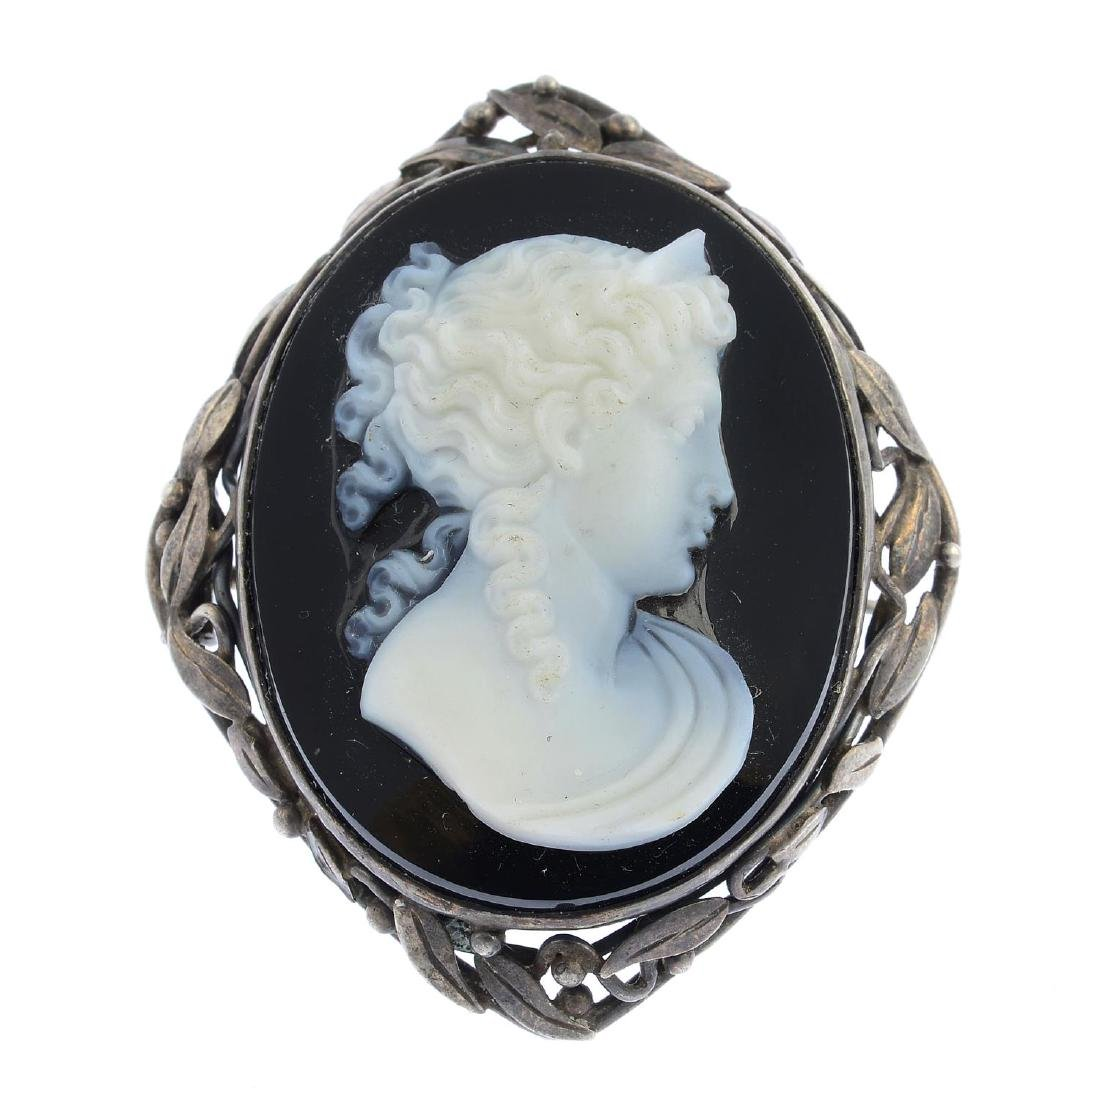 An early 20th century silver onyx cameo brooch. The